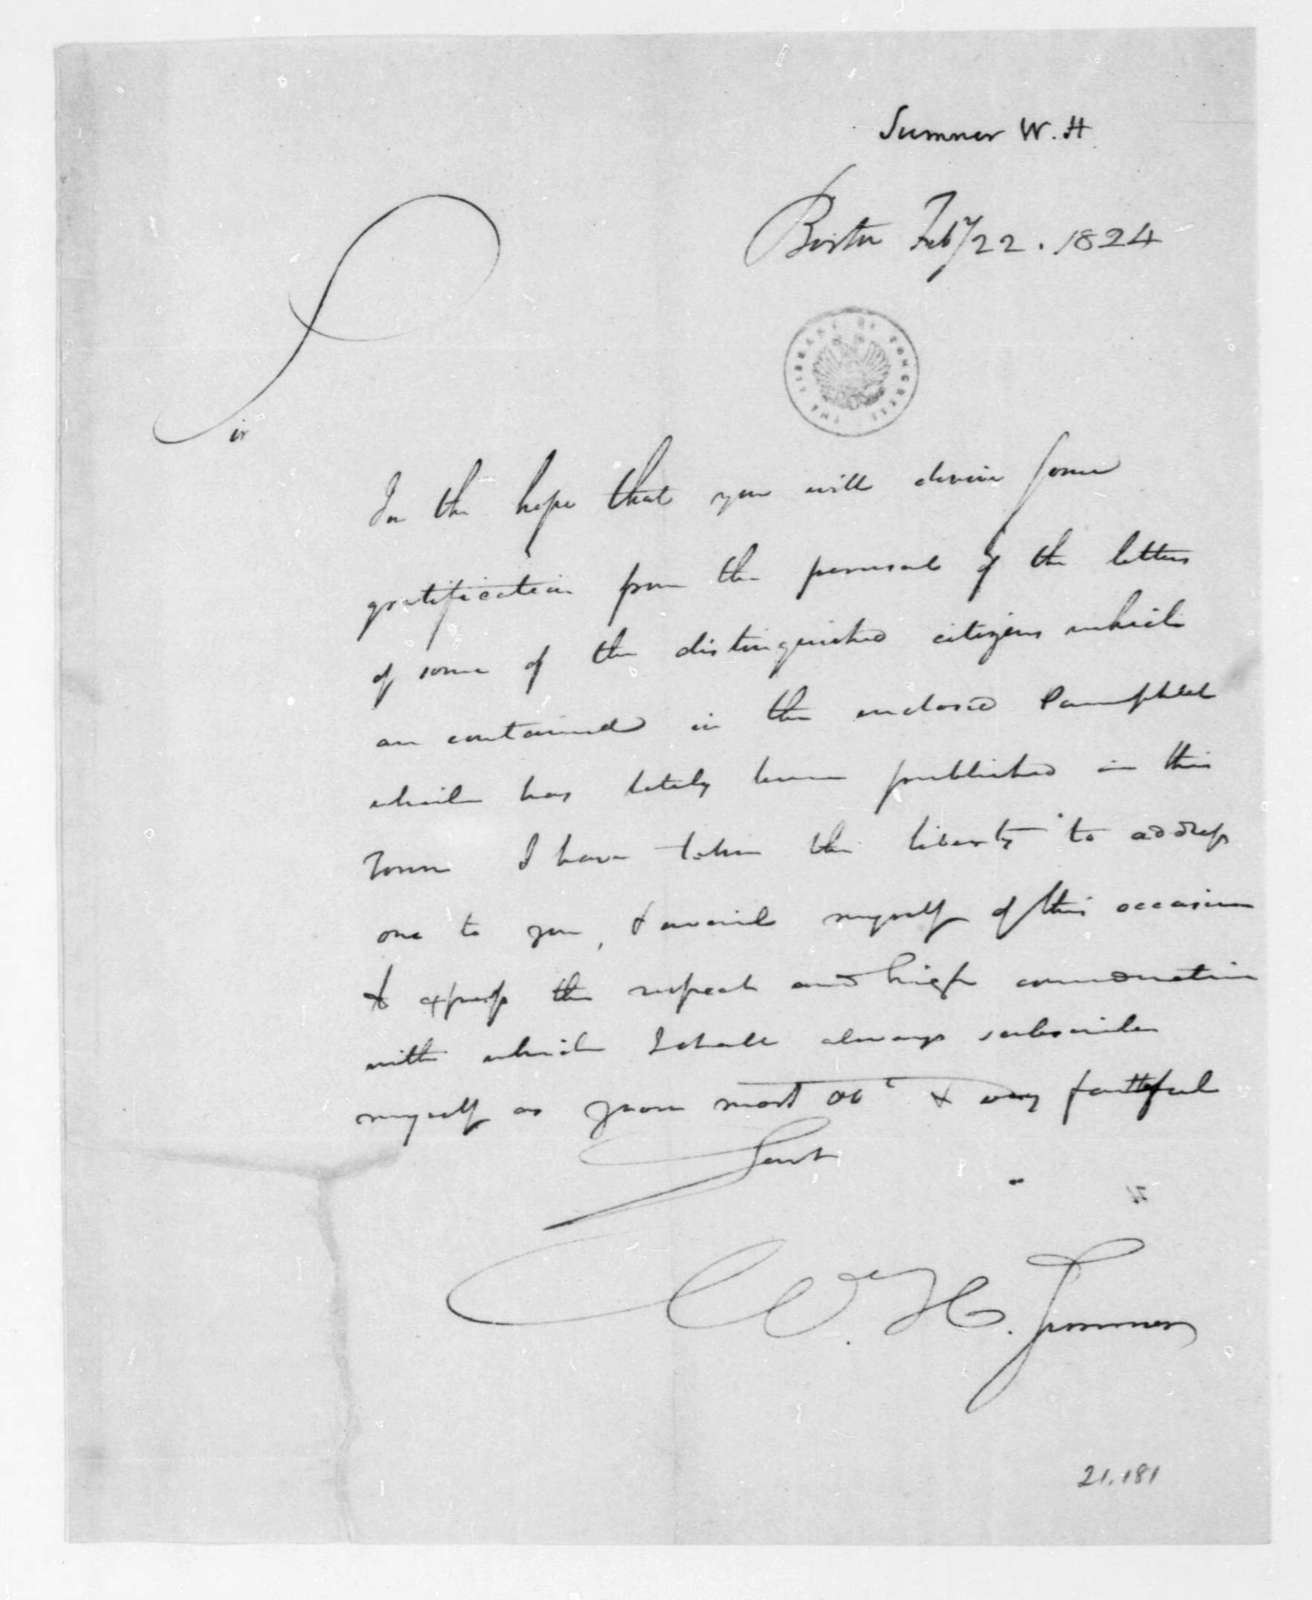 W. H. Sumner to James Madison, February 22, 1824.